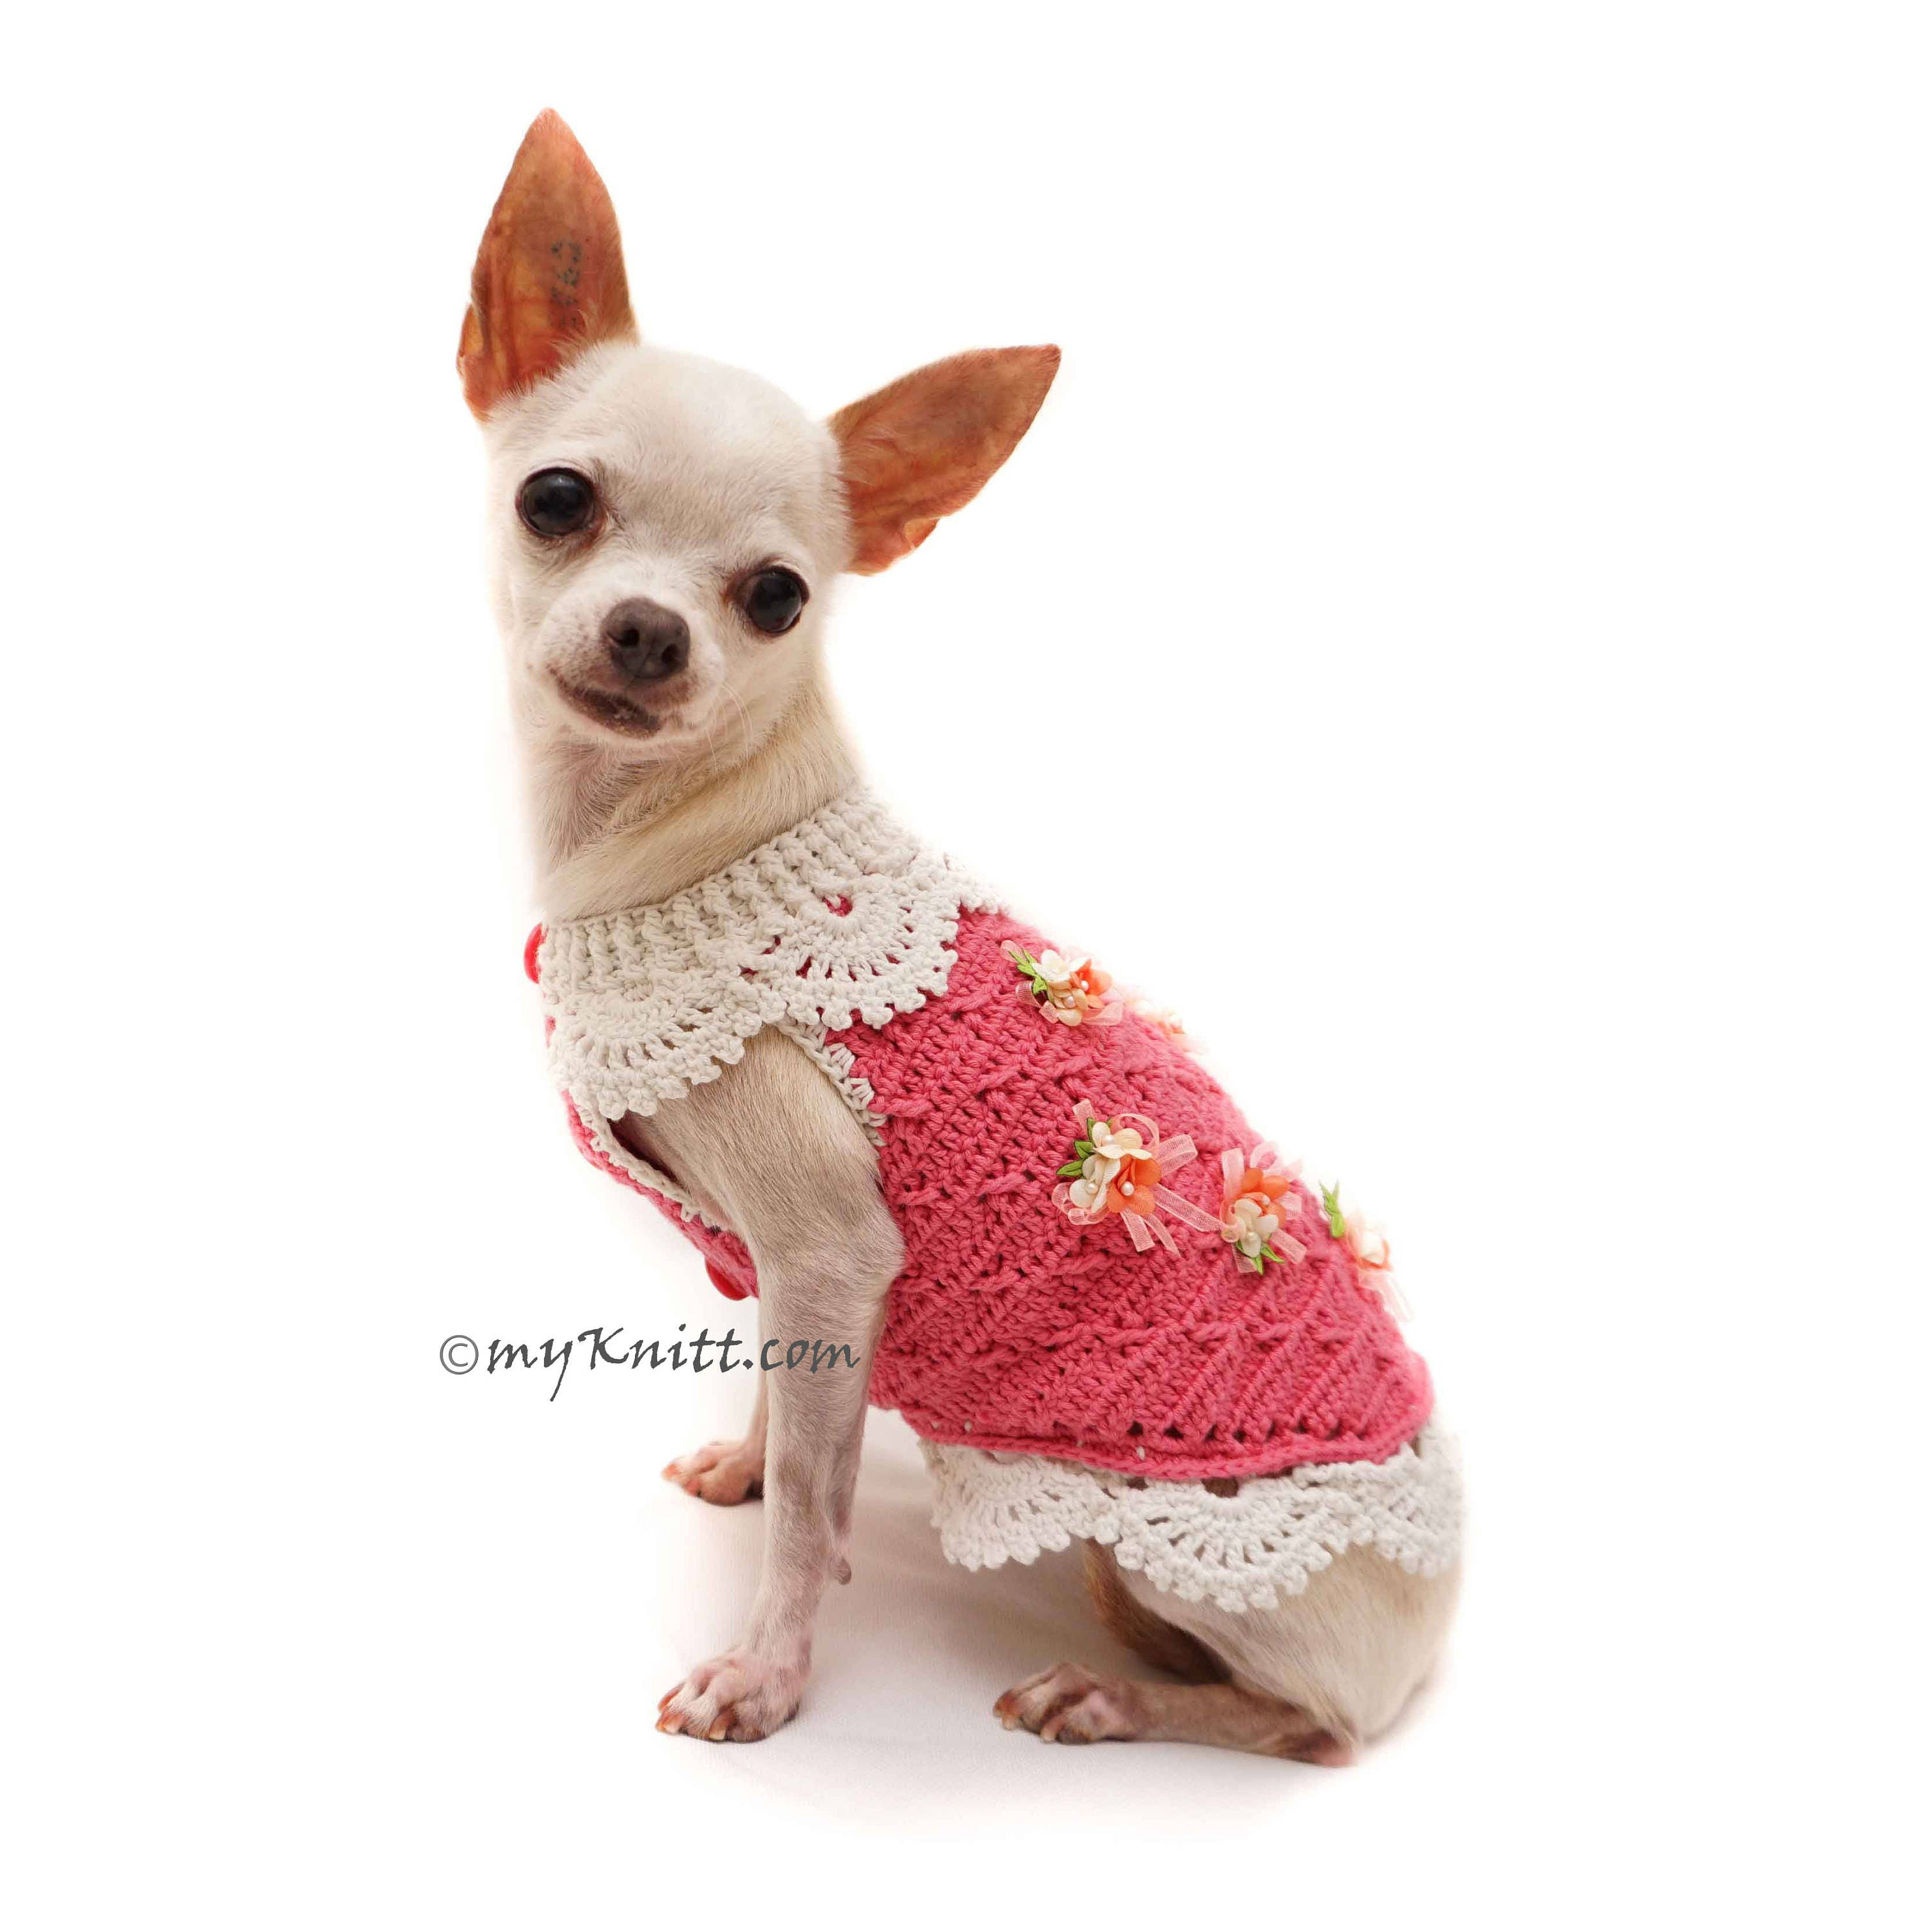 Pink Dog Sweater Crochet Lace Dress Chihuahua Clothes Etsy